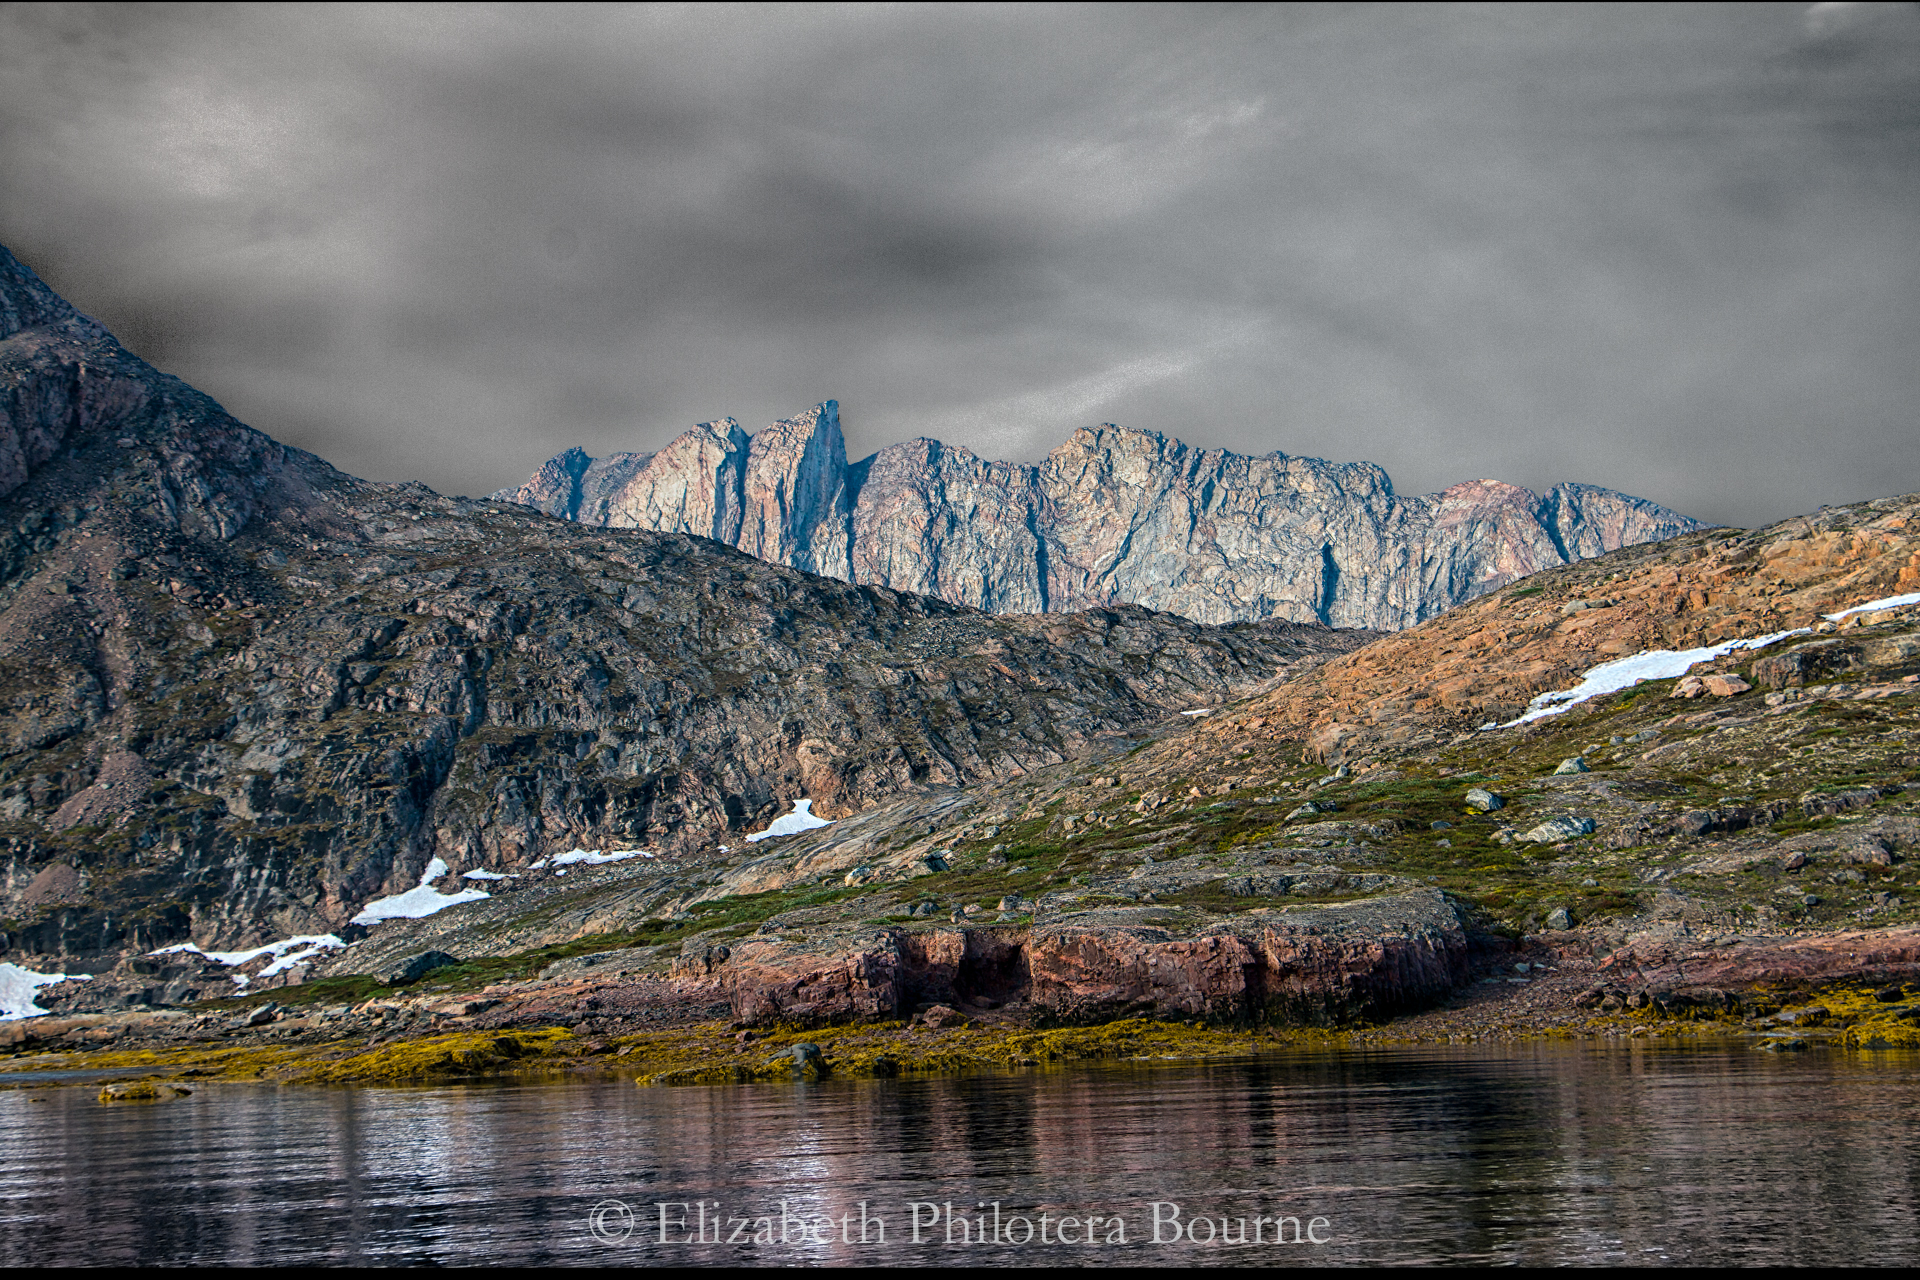 Rocky landscape with gray cliffs against stormy sky in Greenland